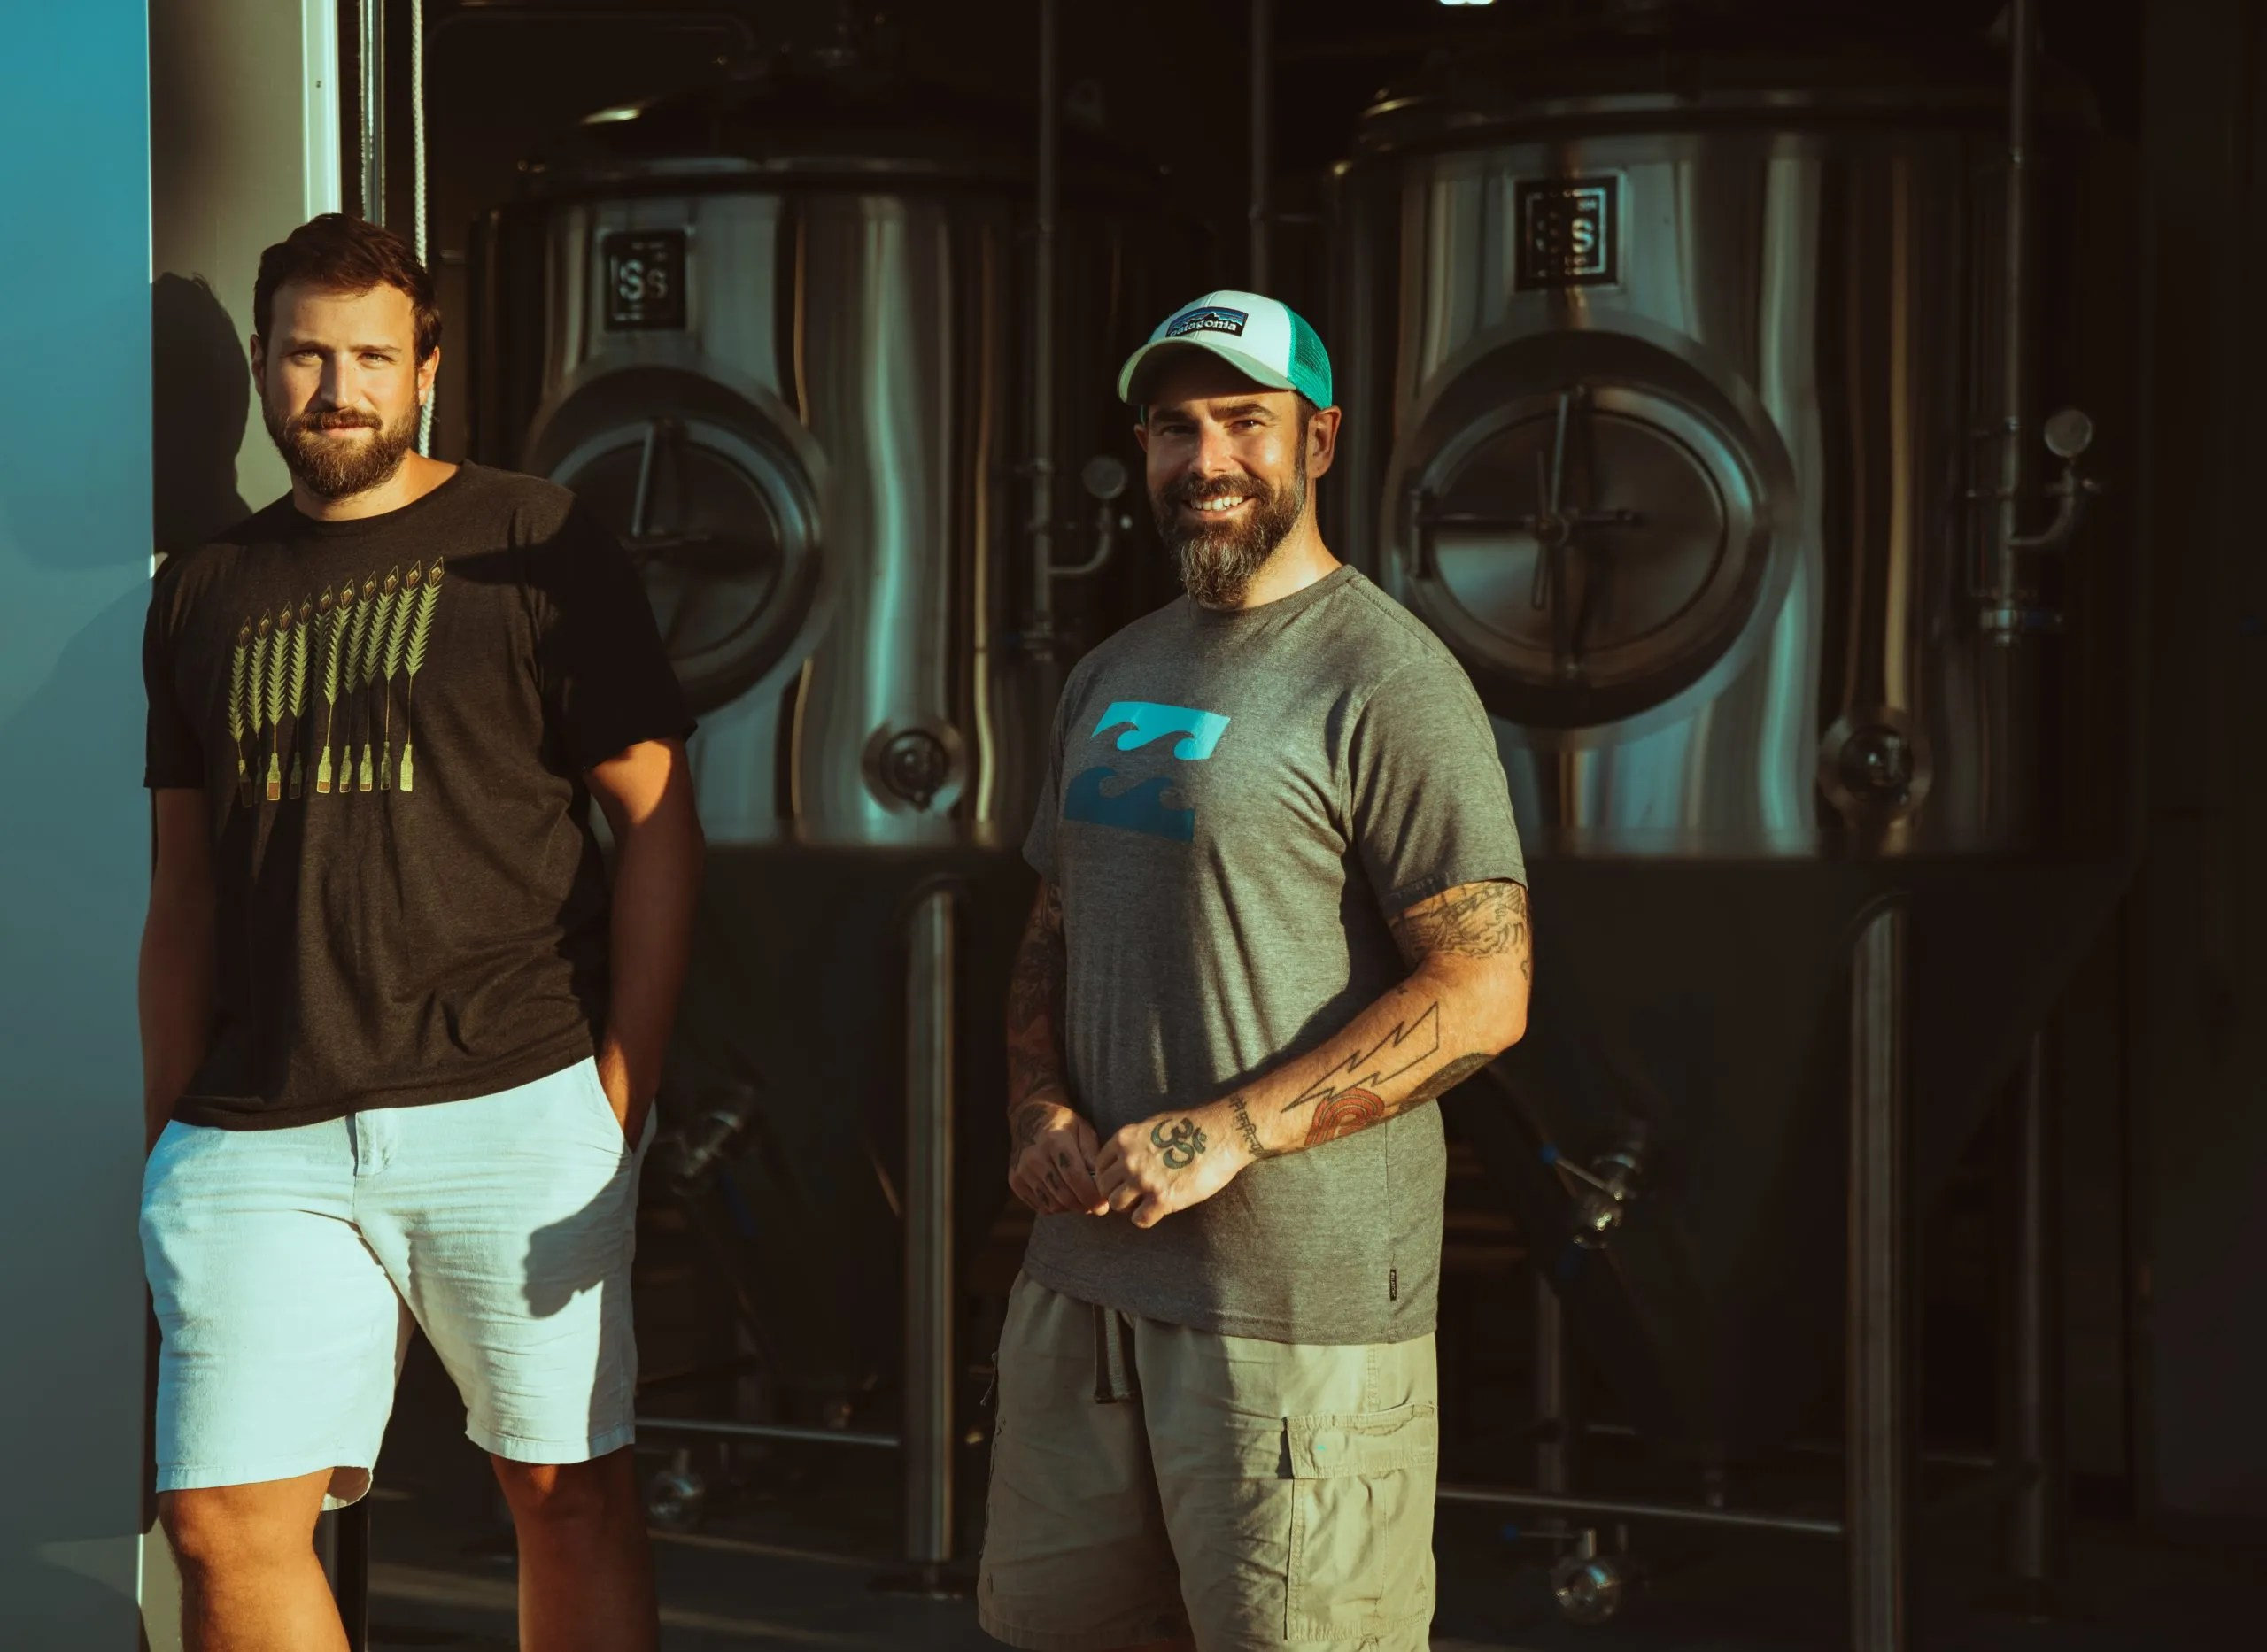 Bryan Benedict and Jeff Goodno of Moniker Brewery